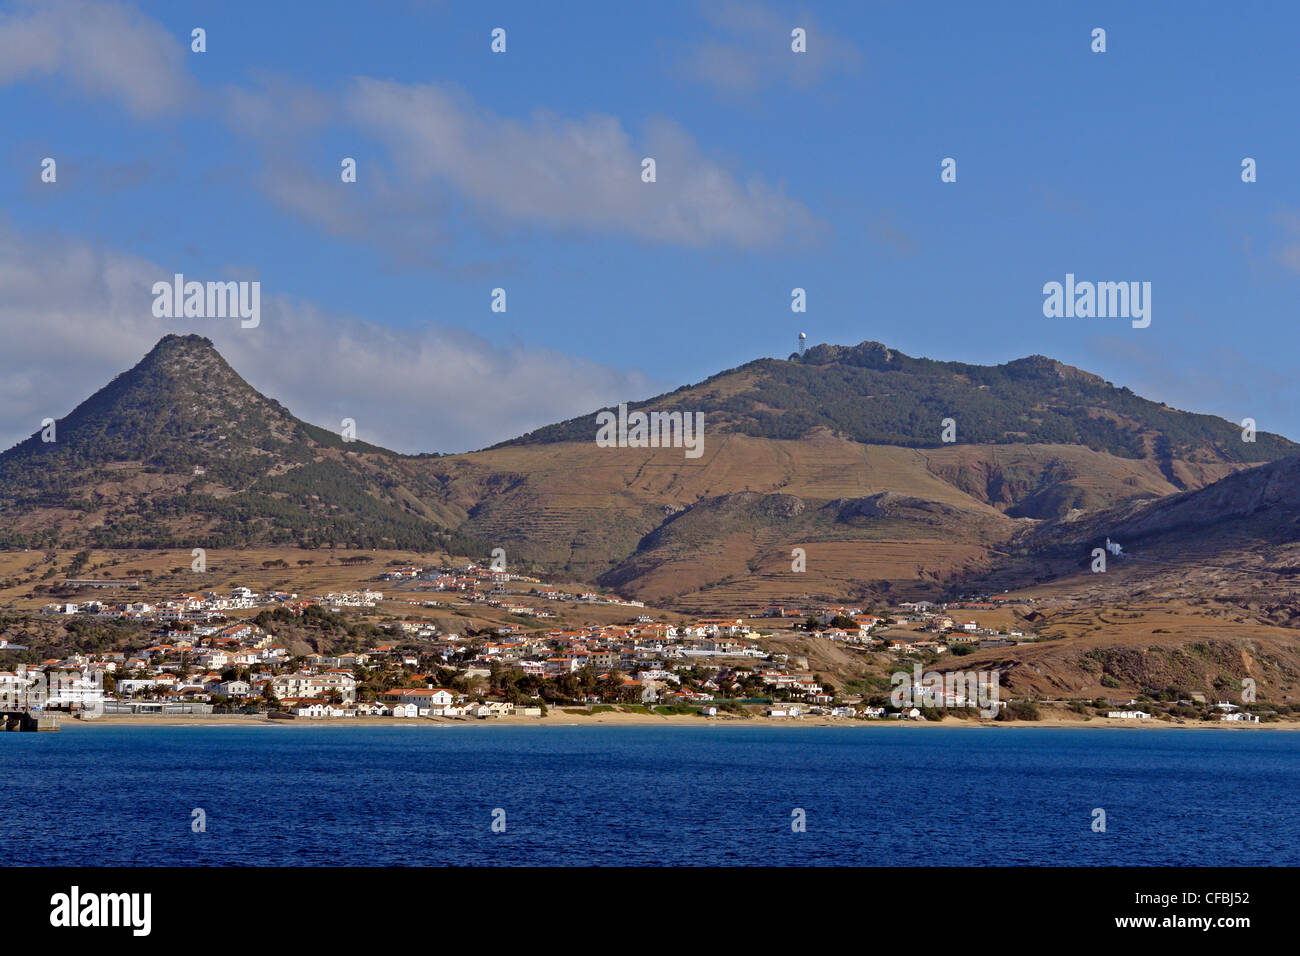 Europe, Portugal, Porto Santo, Vila Baleira, Pico do Castelo, Pico do Facho, island capital, mountains, buildings, - Stock Image